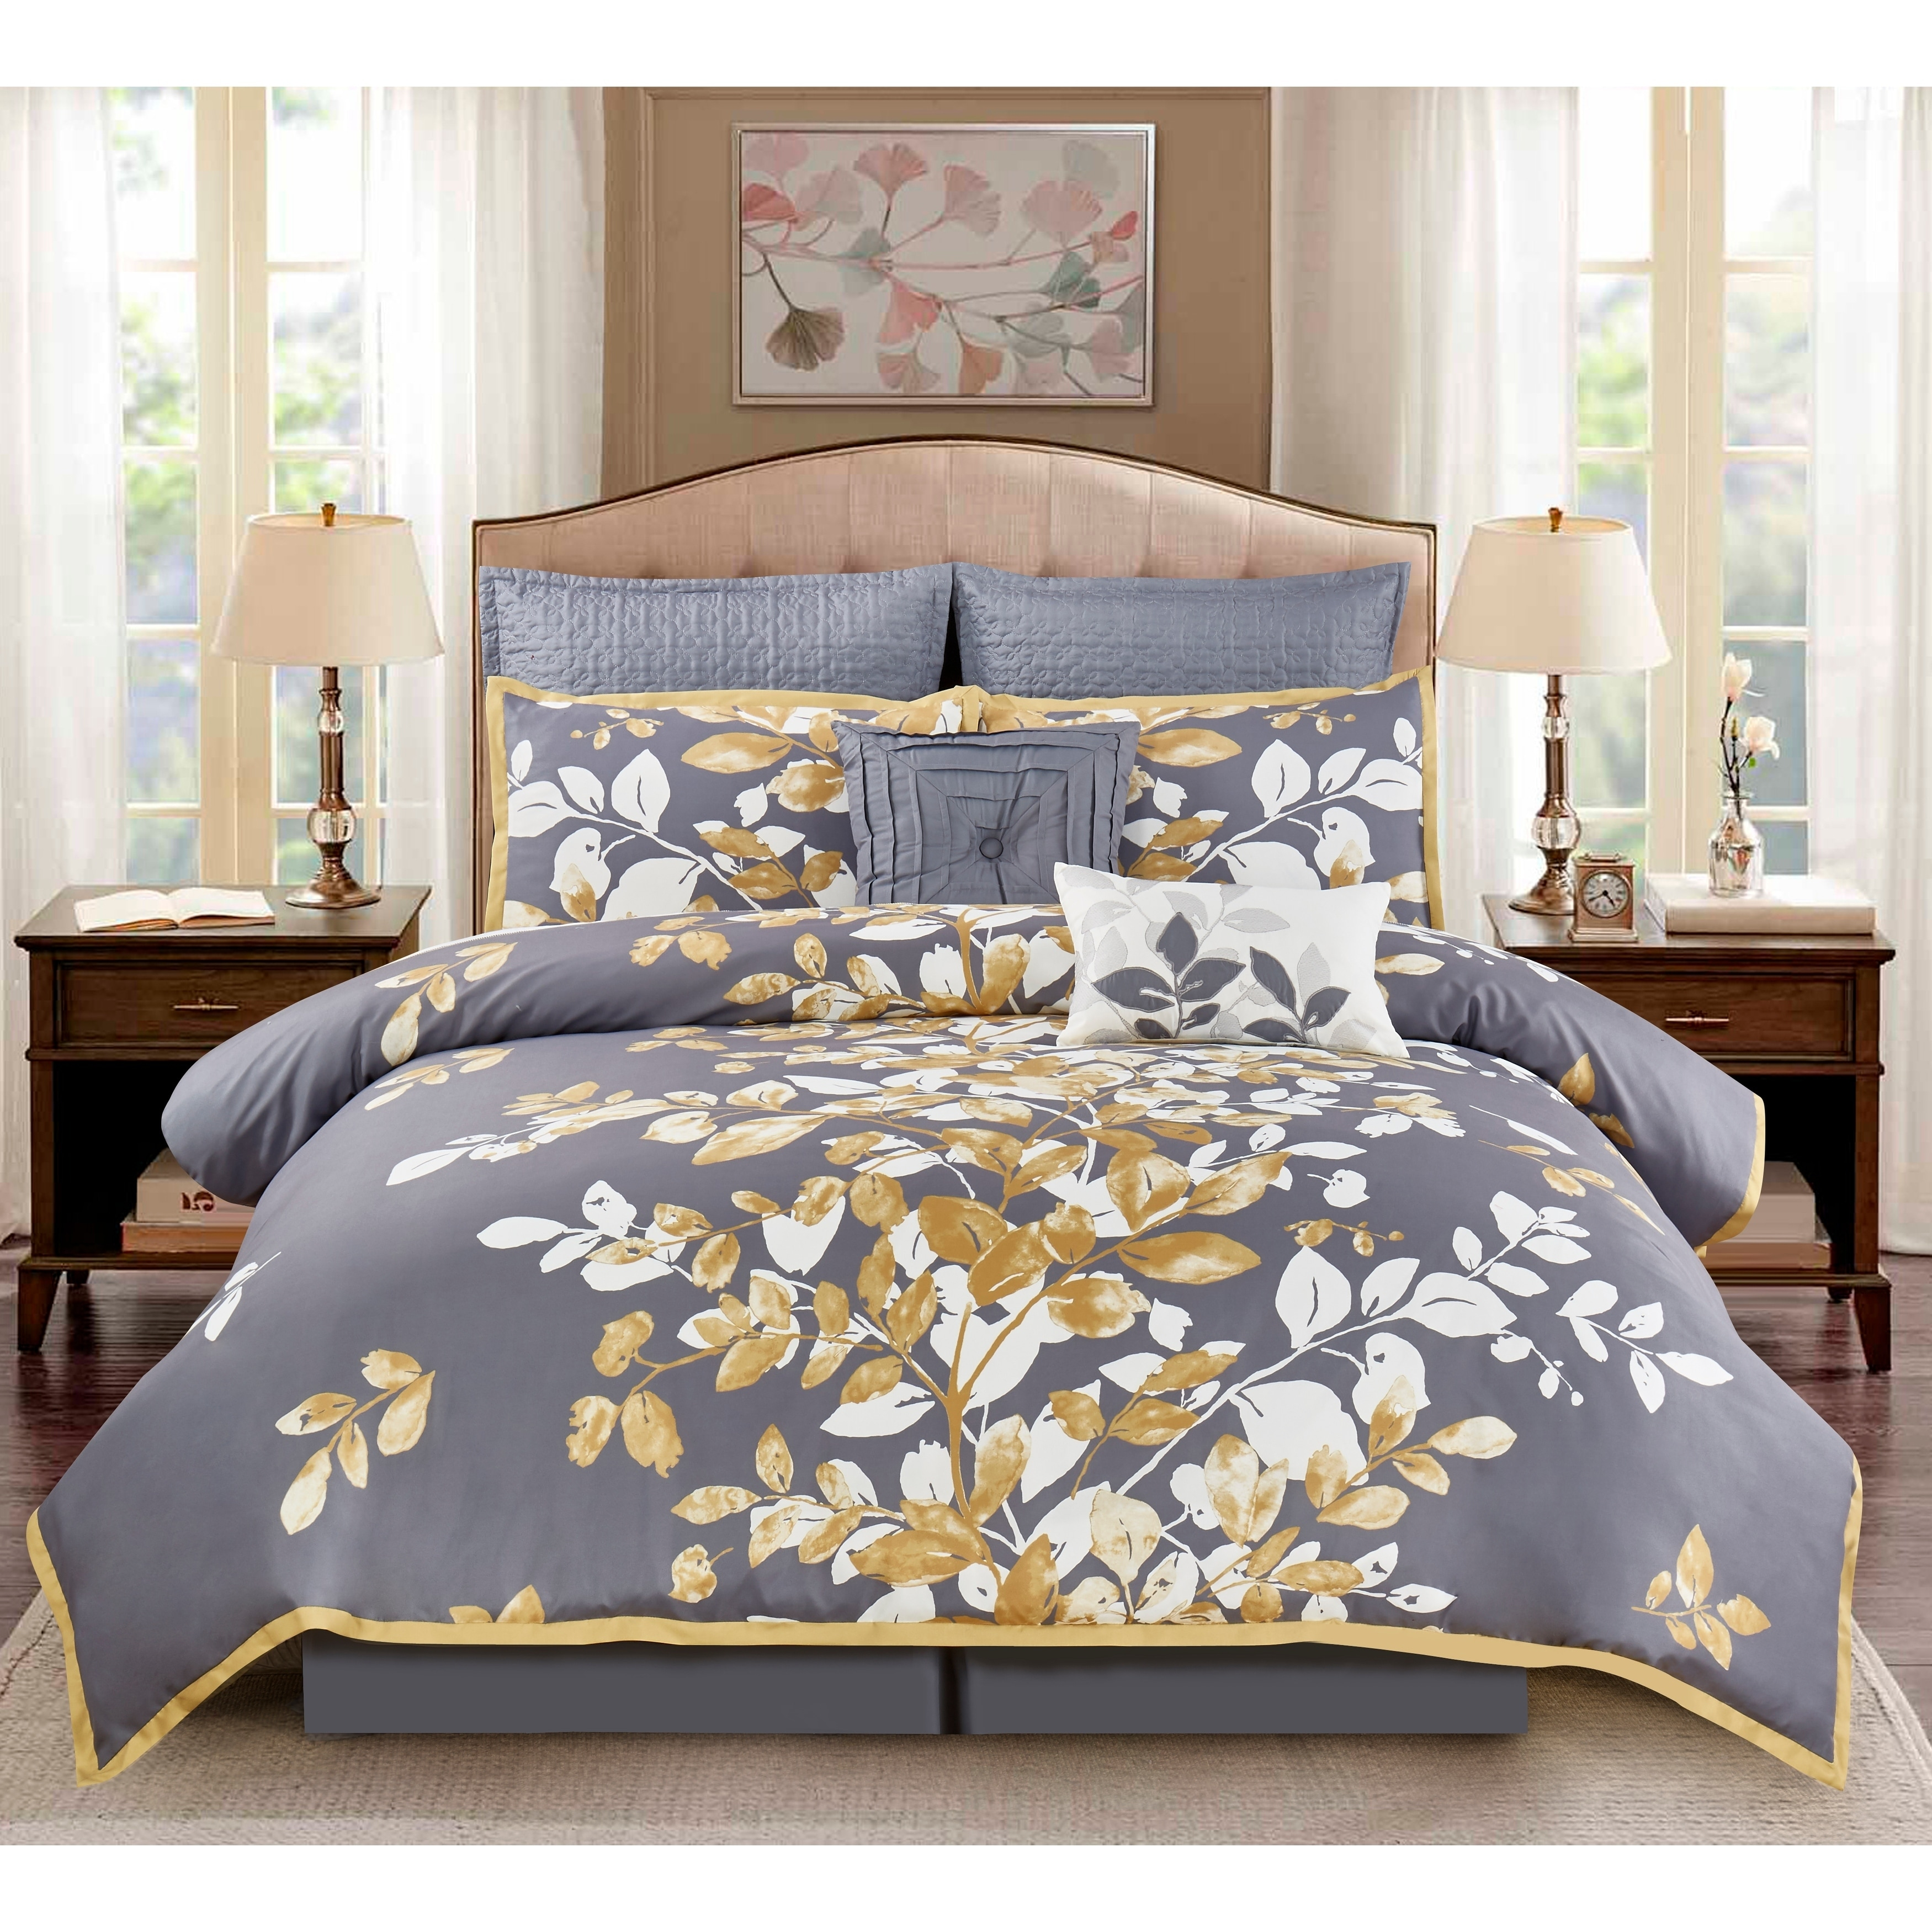 beautiful bag yellow black sheets of double gray full twin in bed dark cream queen sets lacoste and white bedding size mustard a grey comforter